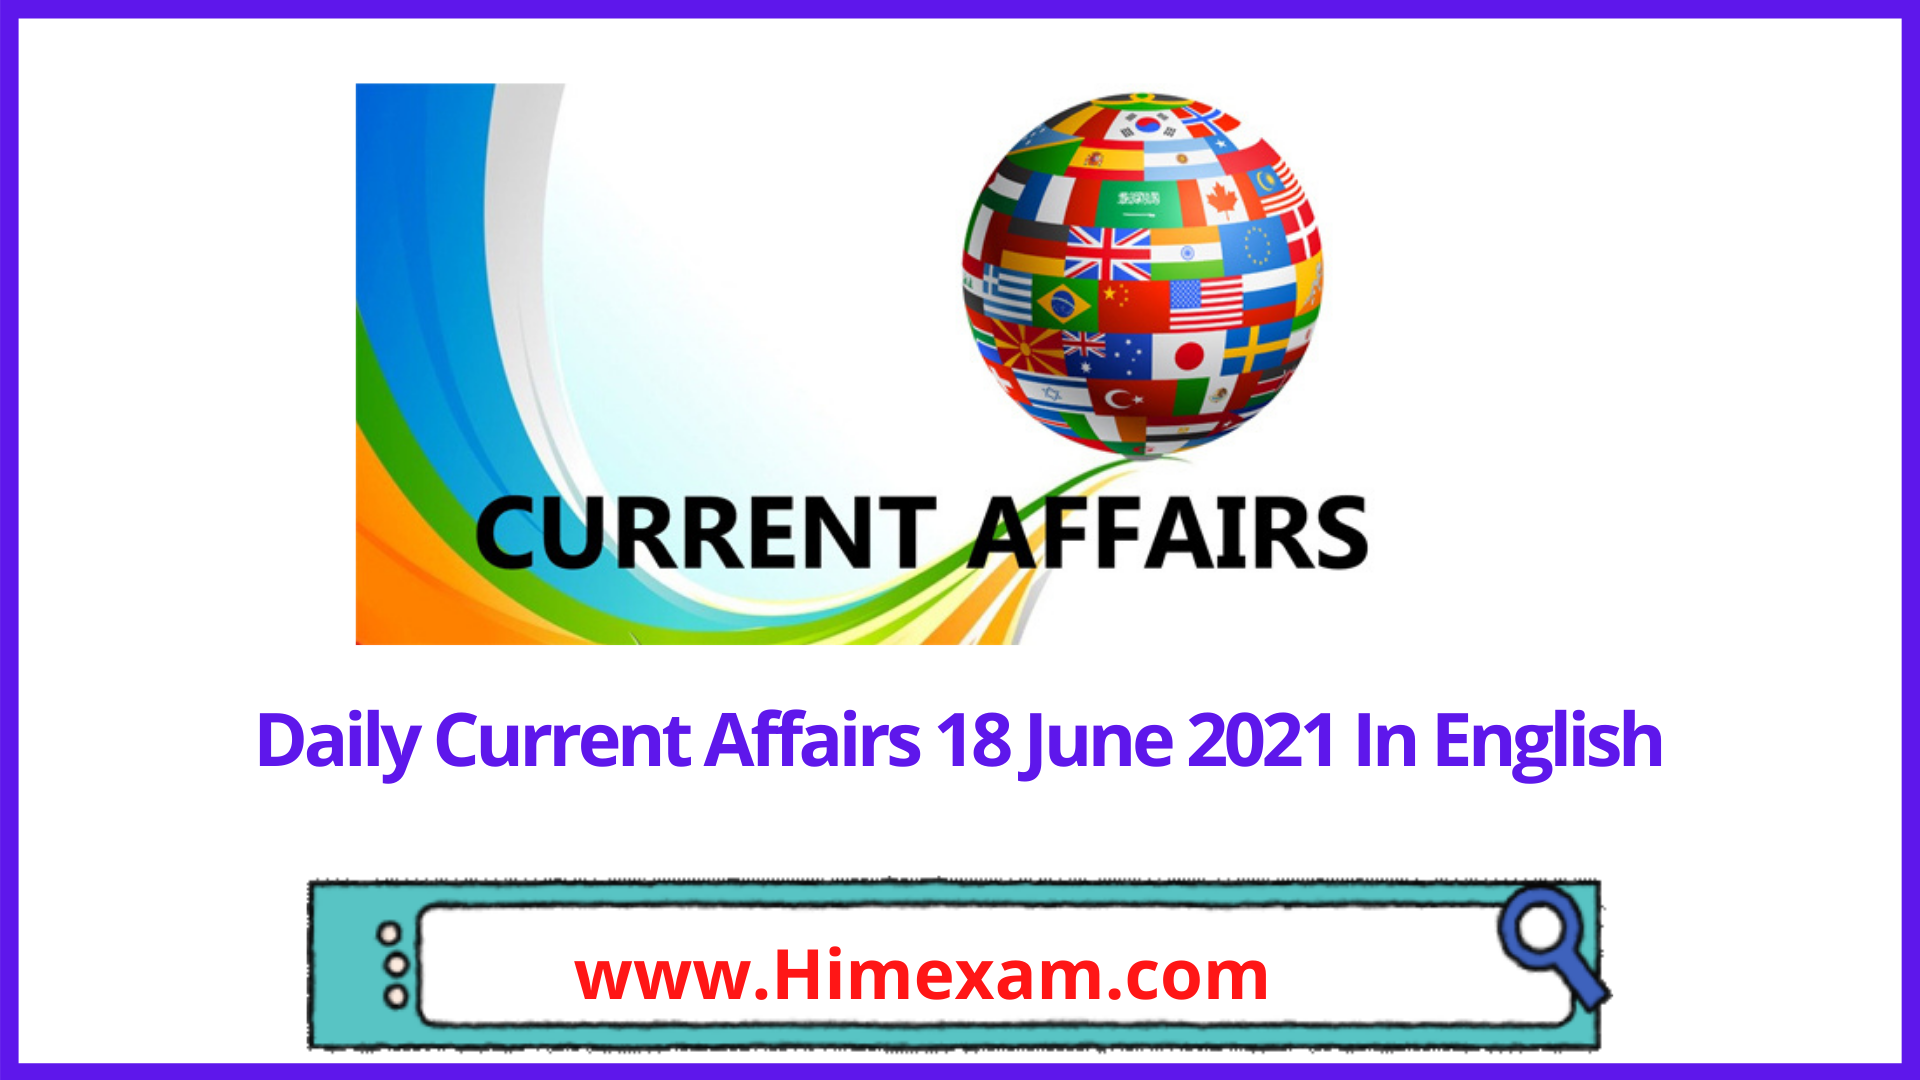 Daily Current Affairs 18 June 2021 In English